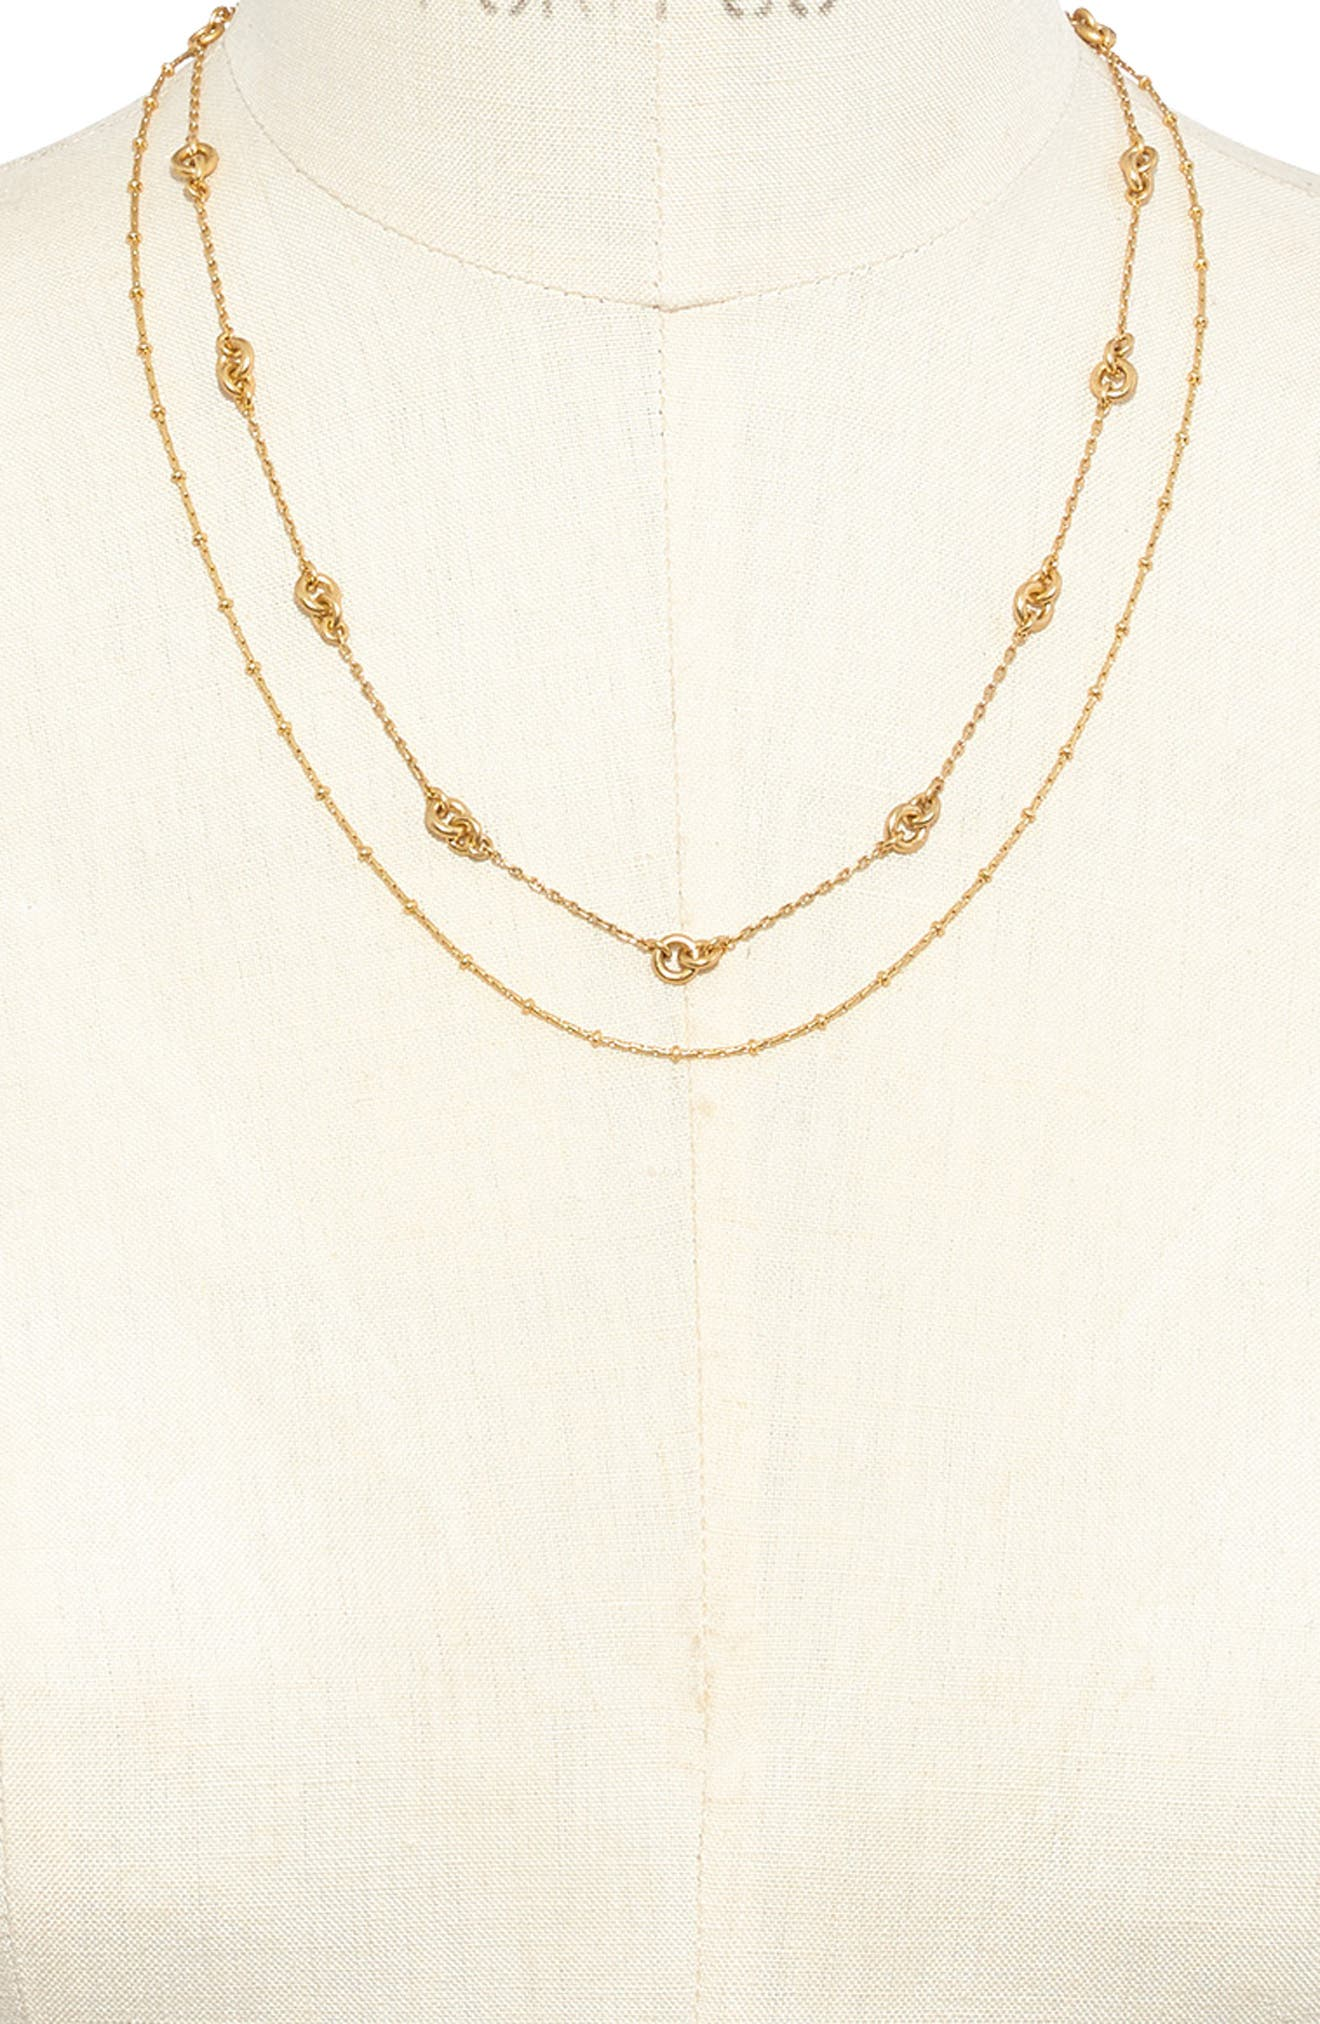 MADEWELL, Layered Chain Necklace, Alternate thumbnail 2, color, 710